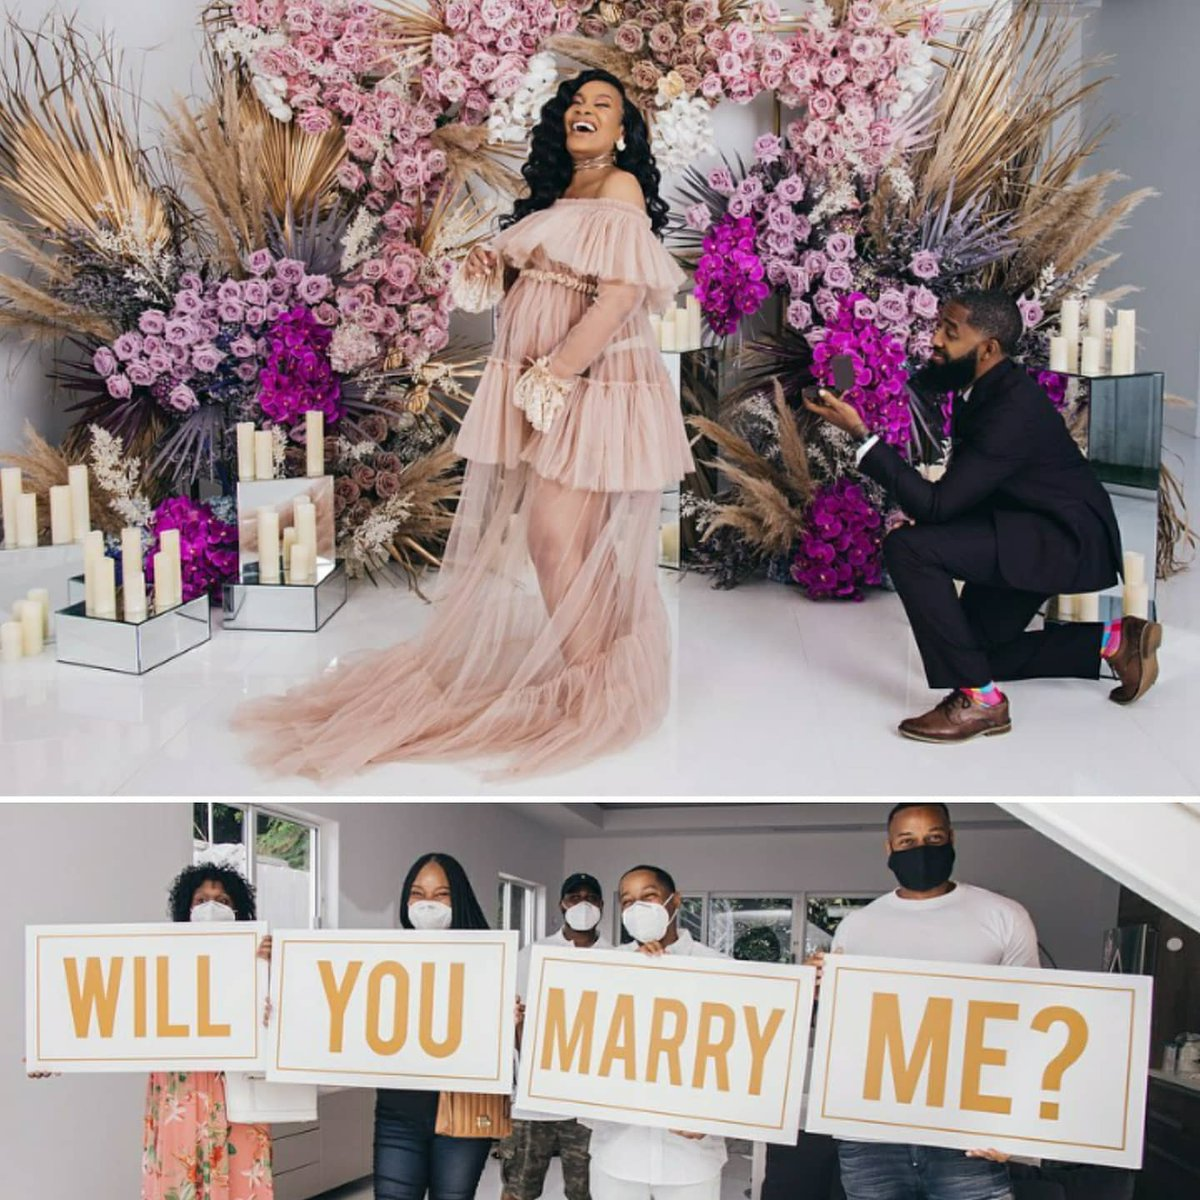 Maternity Glow  and BOOM, this happens . Maternity photoshoot turn surprise proposal. #SheSaidYes .    Follow us More on IG  #SHESAIDYES #engaged #proposal #maternity #BABYBUMP #BlackLovepic.twitter.com/pt5IeQWQrD